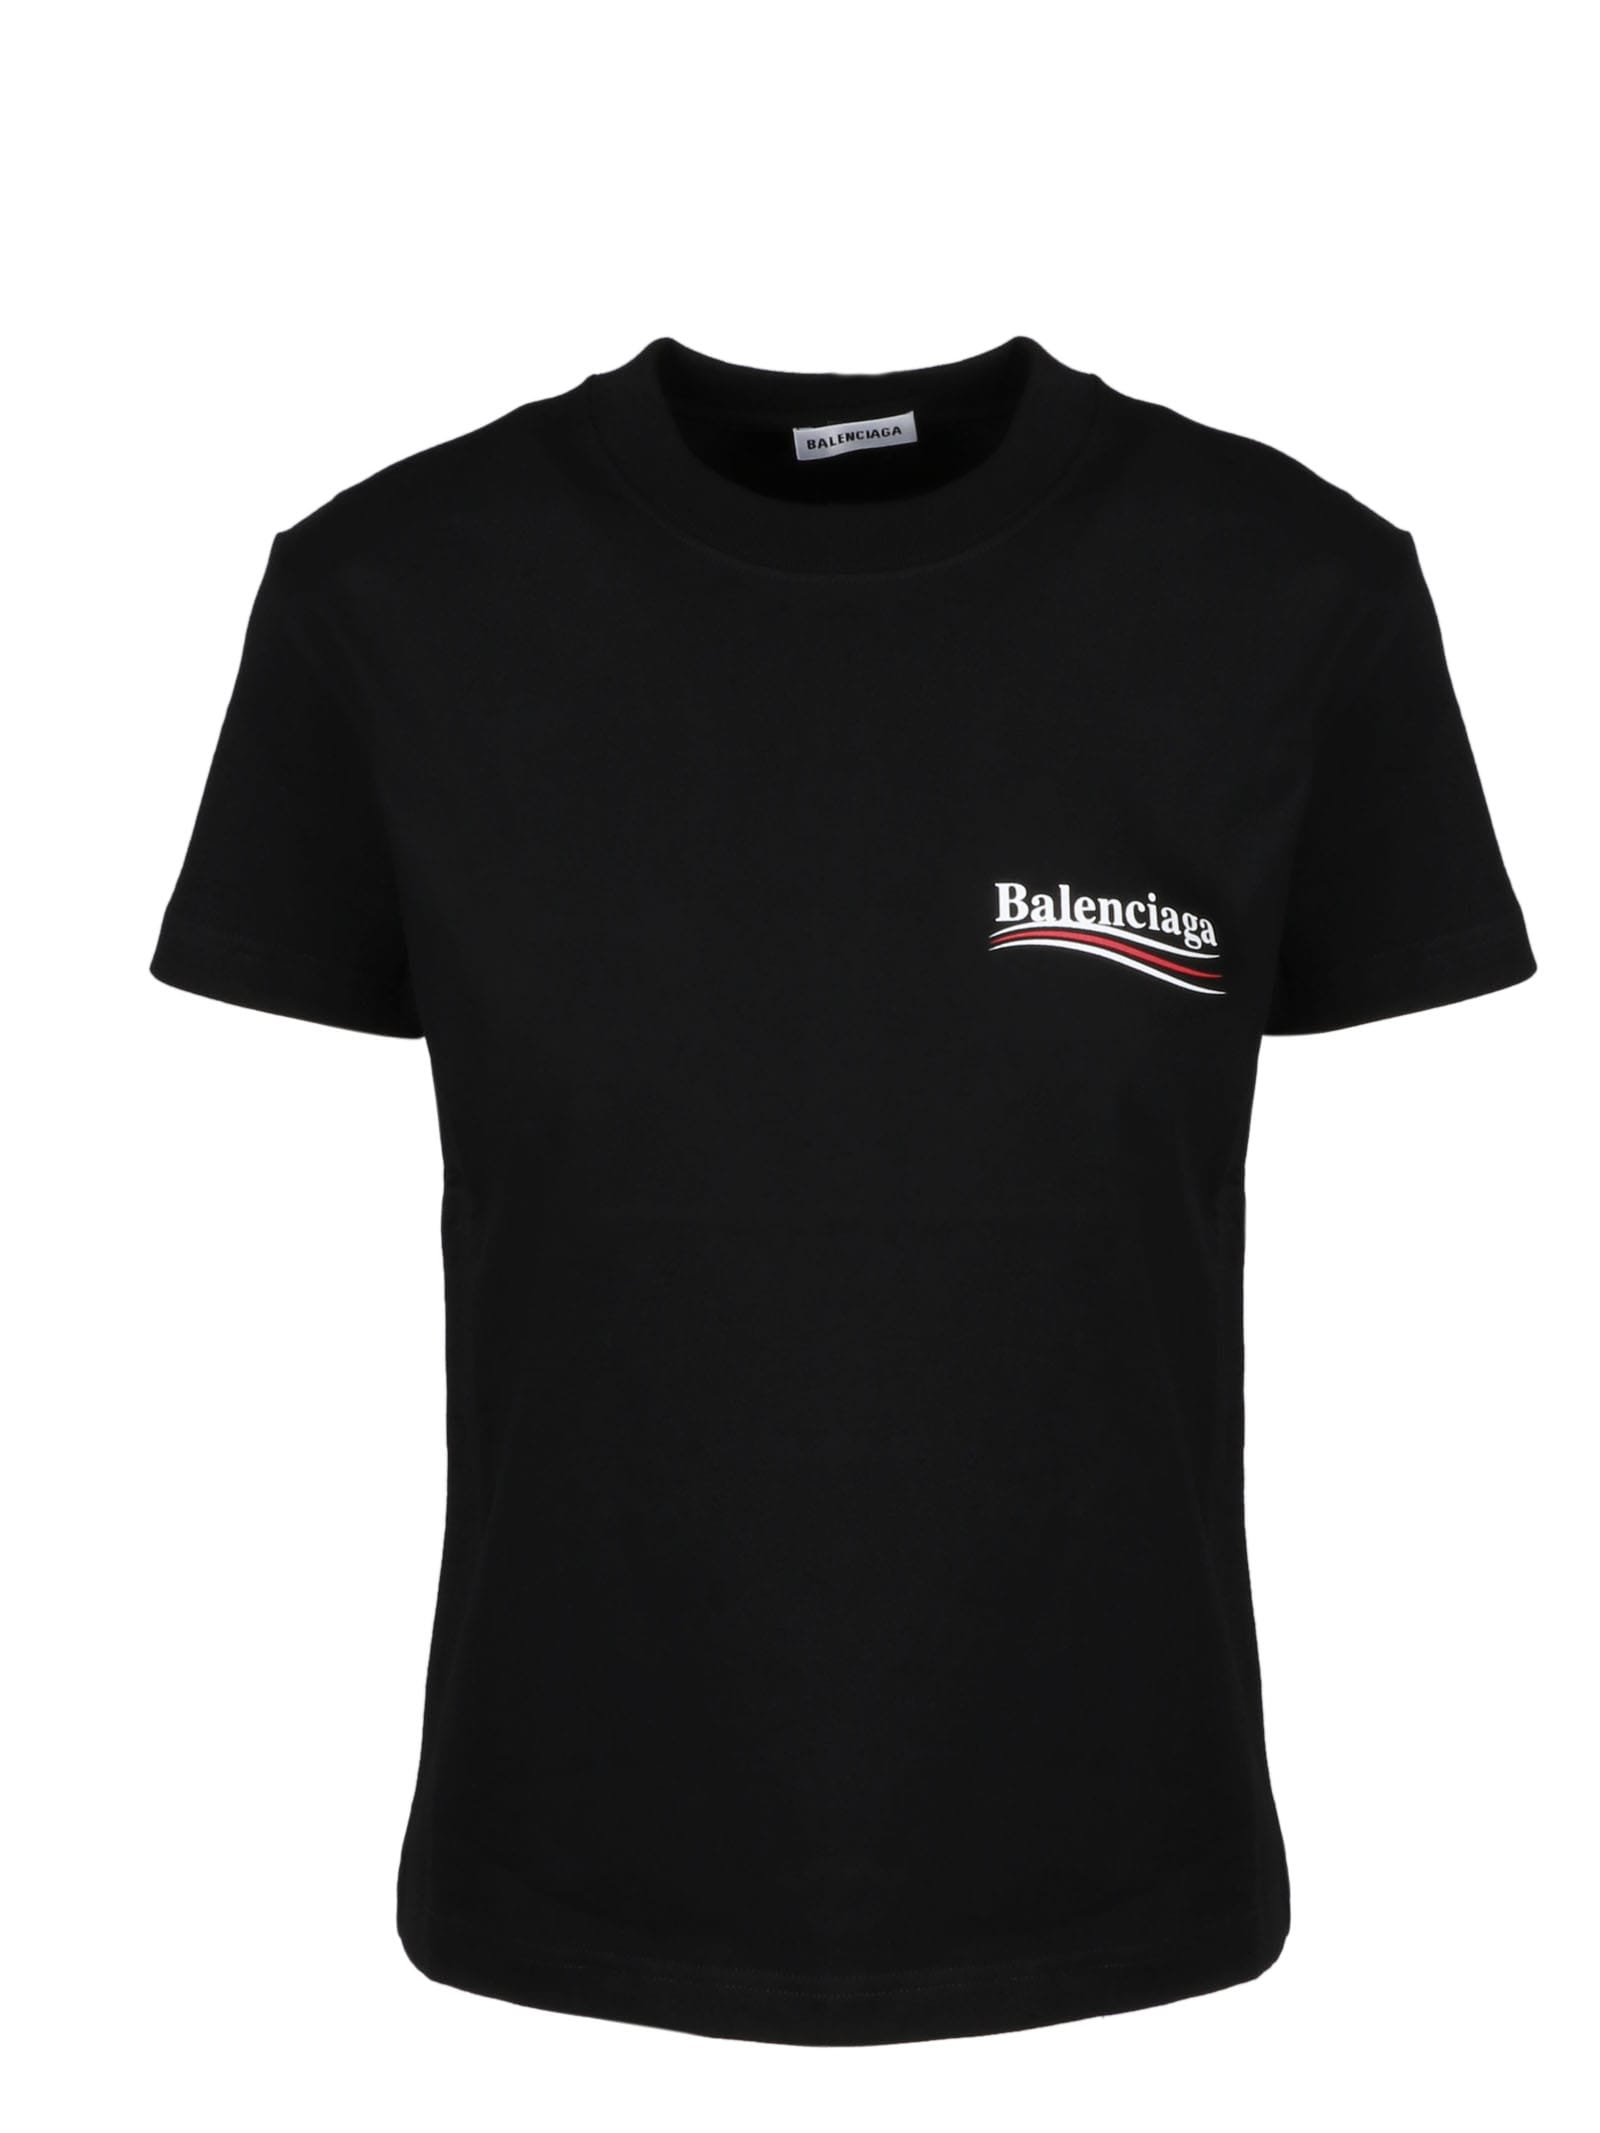 Balenciaga Small Fit T-shirt